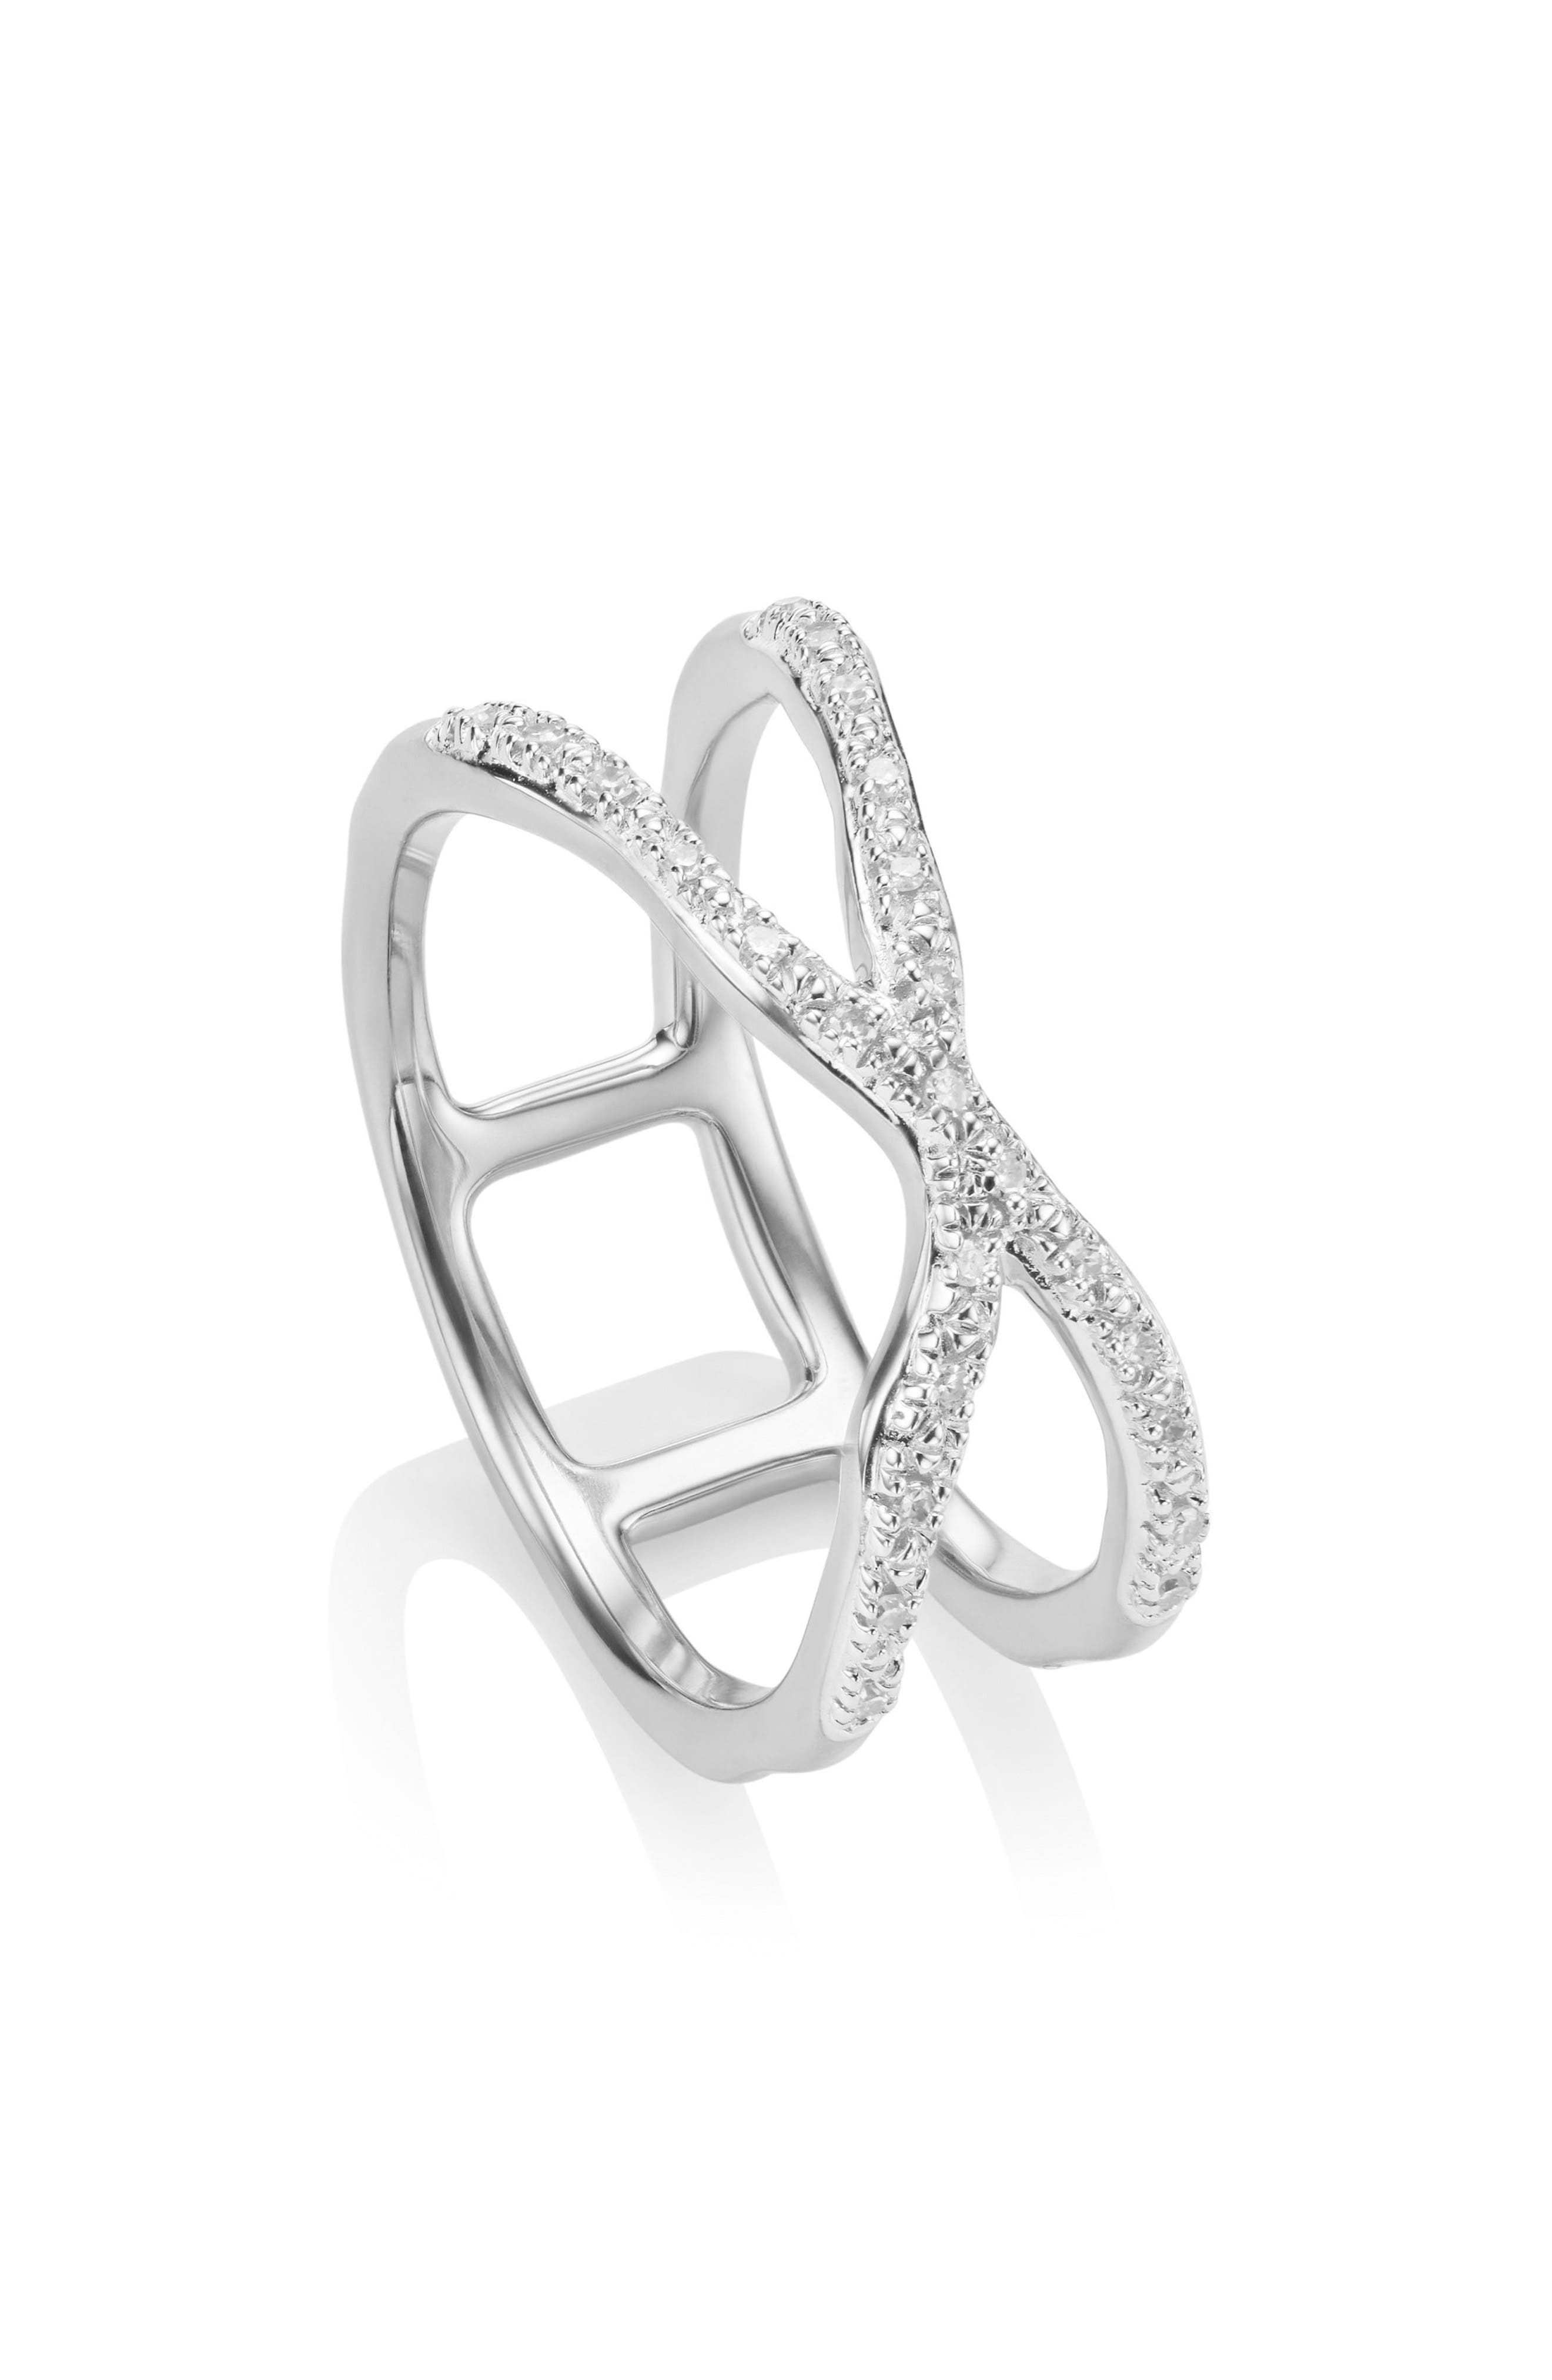 Riva Diamond Ring,                         Main,                         color, SILVER/ DIAMOND